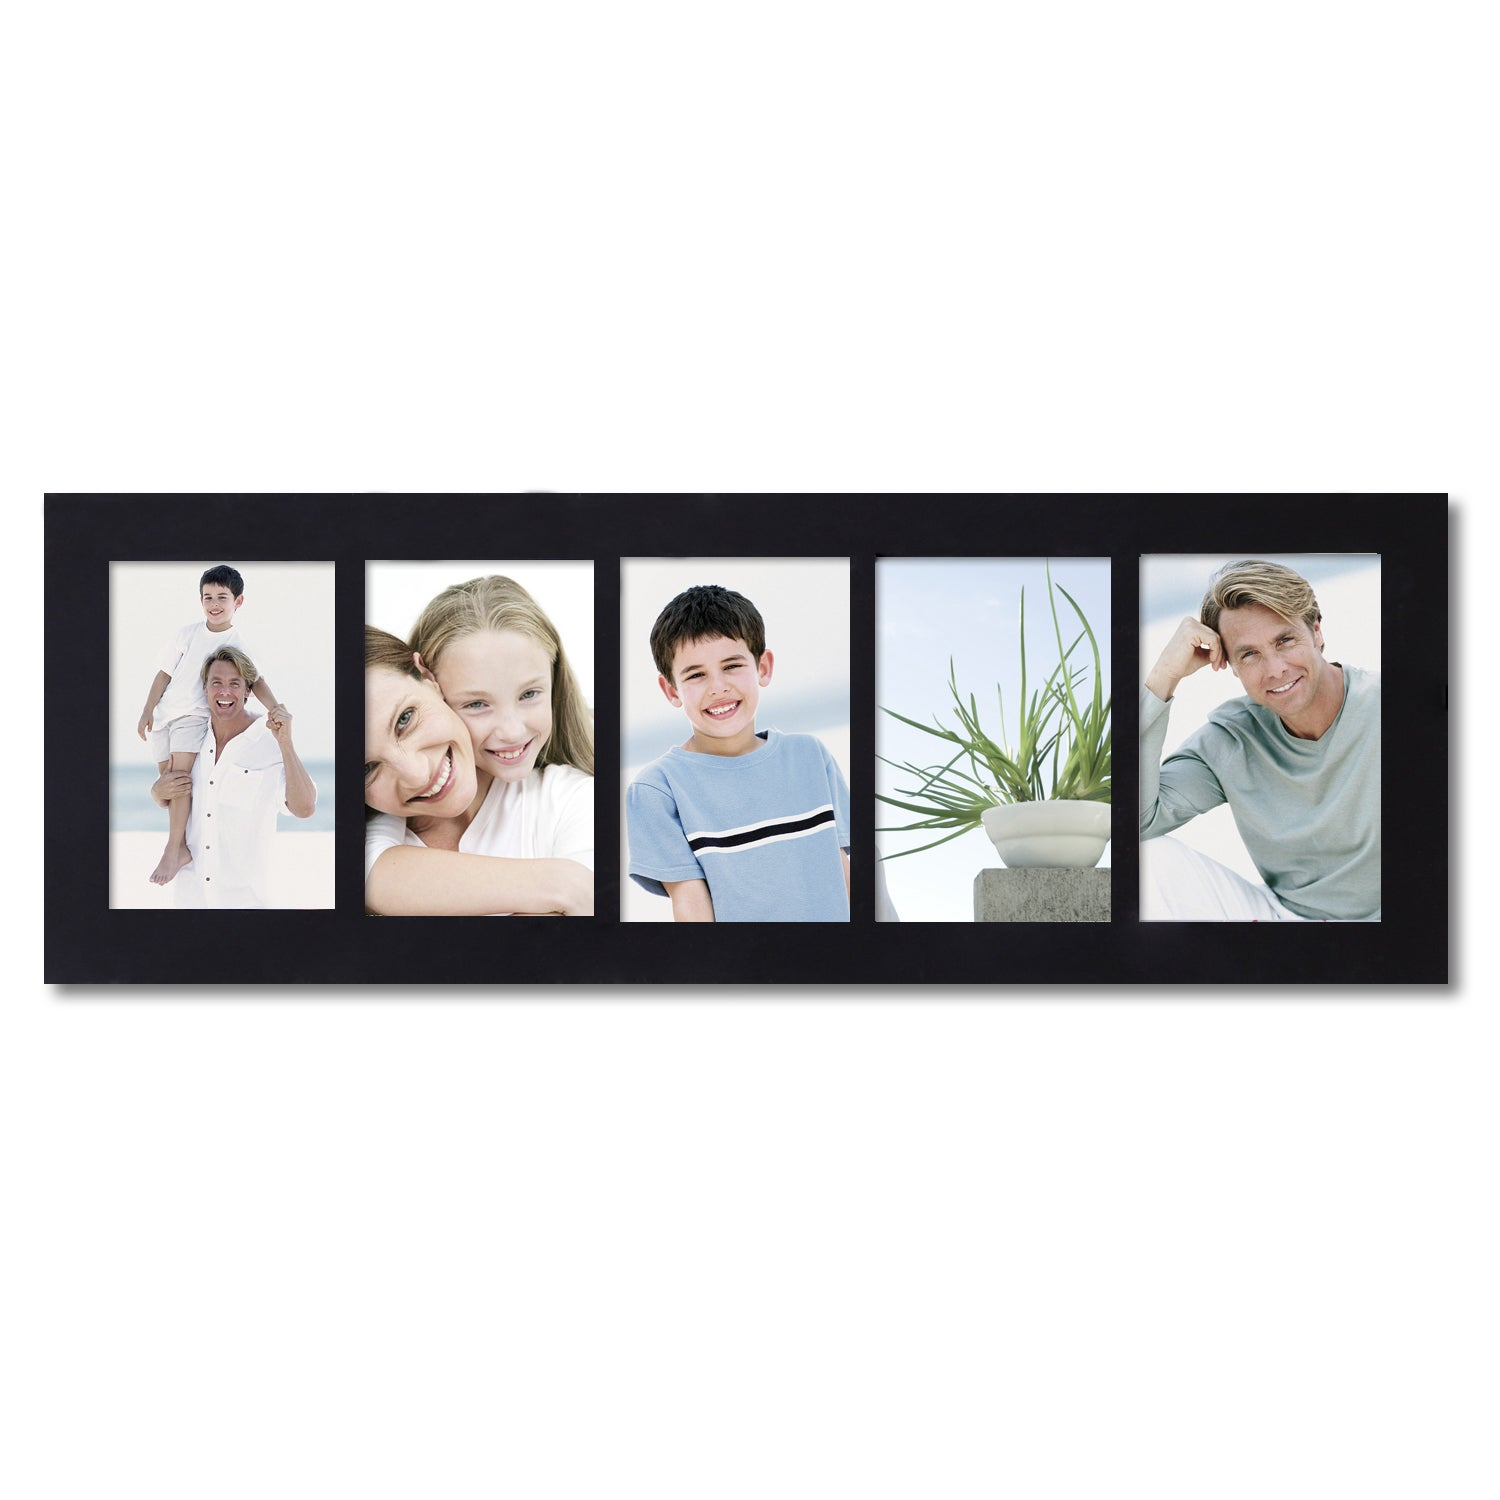 Adeco Decorative Black Wood Wall Hanging Picture Frame with 5 ...